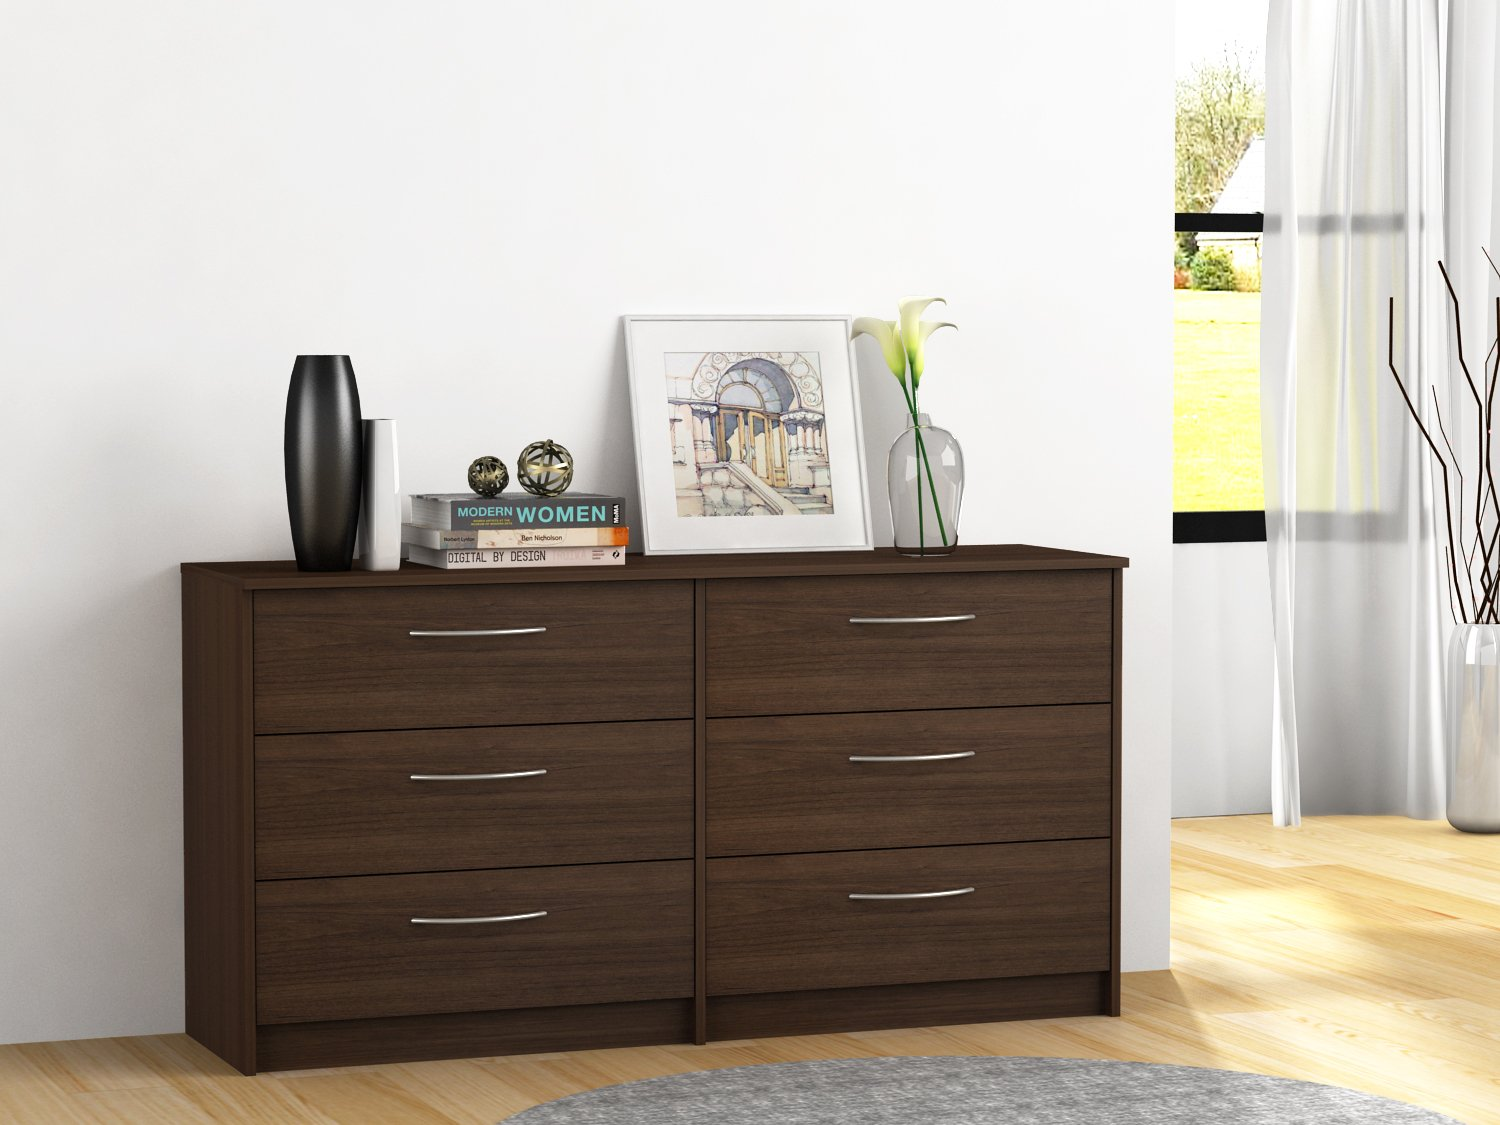 Homestar Finch 6 Drawer Dresser, 54.5